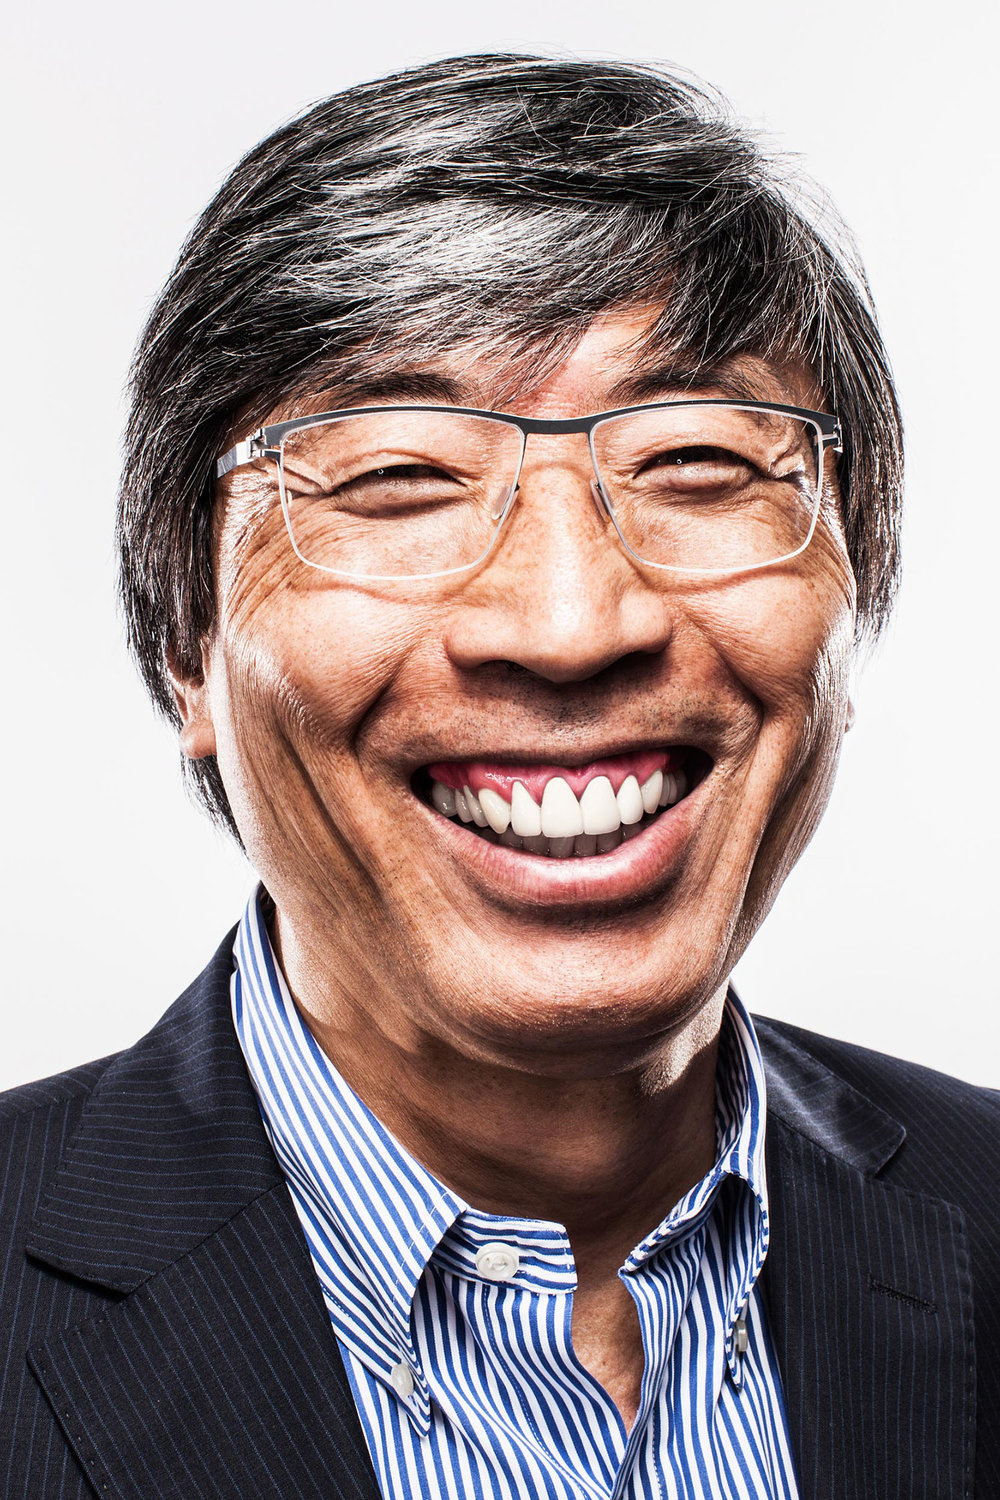 Dr Patrick Soon Shiong, Entrepreneur, Los Angeles, California, 2013